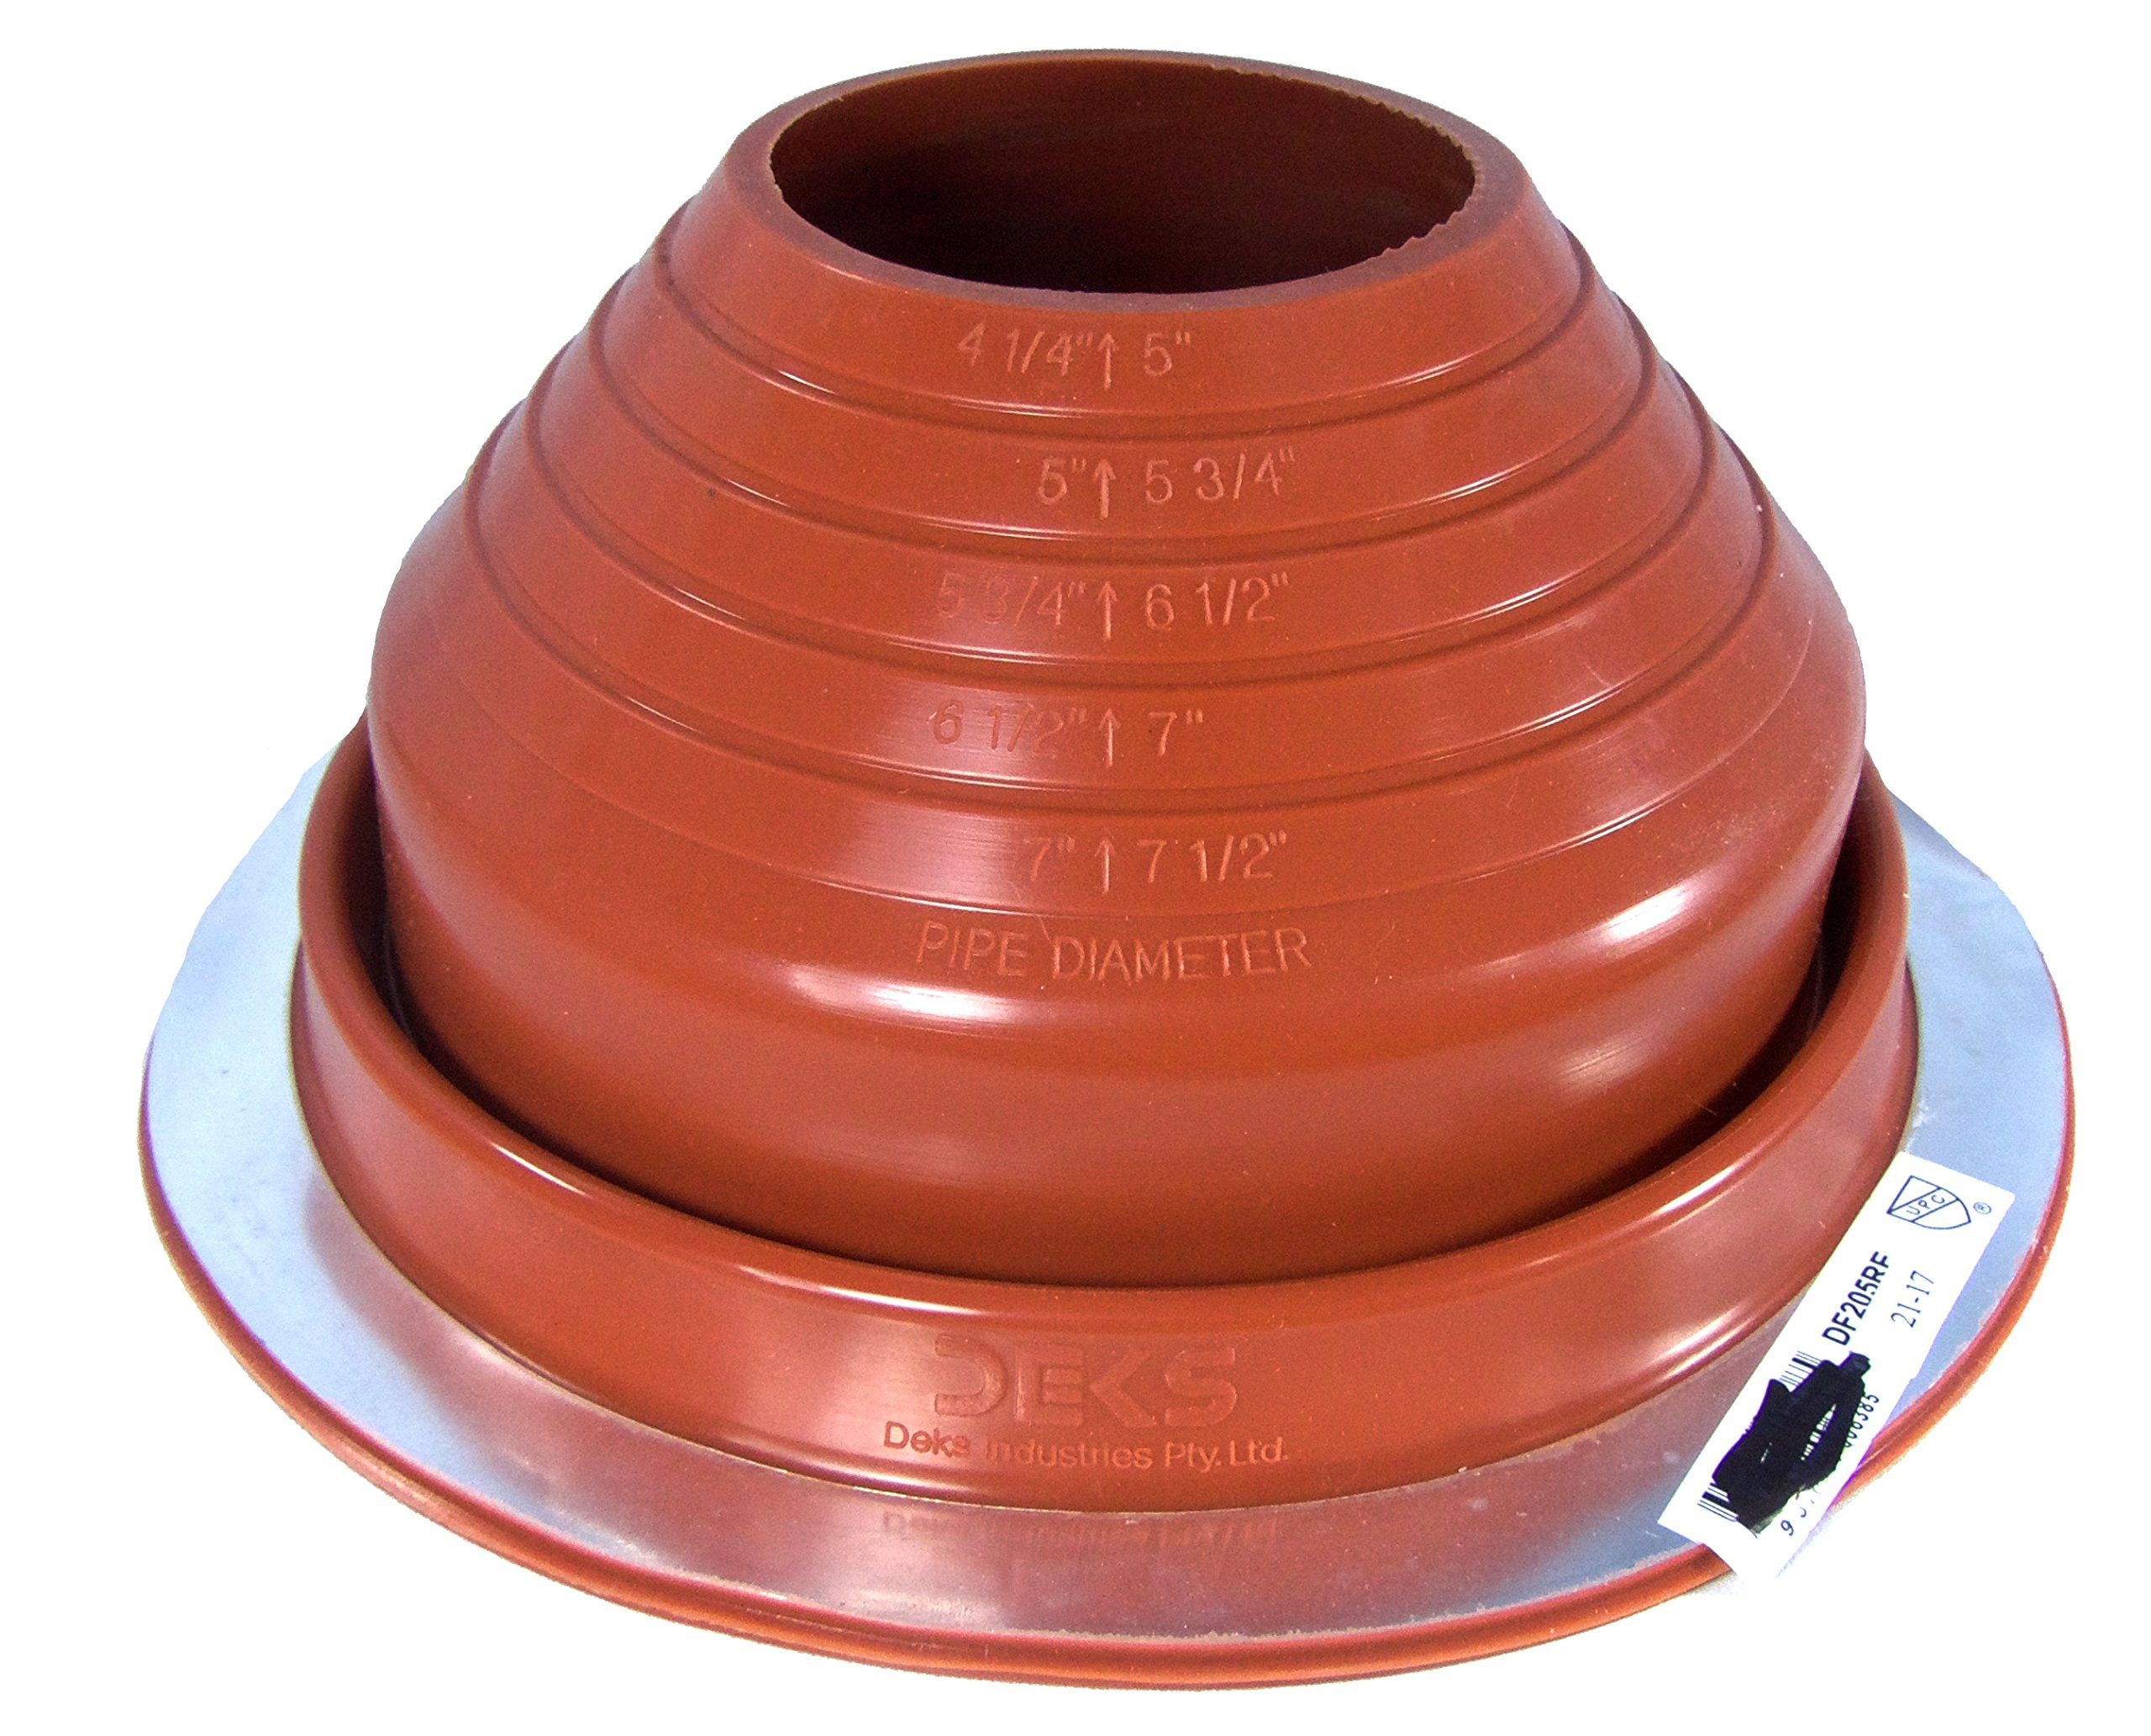 3 Feet Tall Vases Of Best Rated In Roof Flashings Helpful Customer Reviews Amazon Com Throughout Dektite 5 Red Silicone Metal Roof Pipe Flashing Round Base Pipe Od 4 1 4 7 1 2